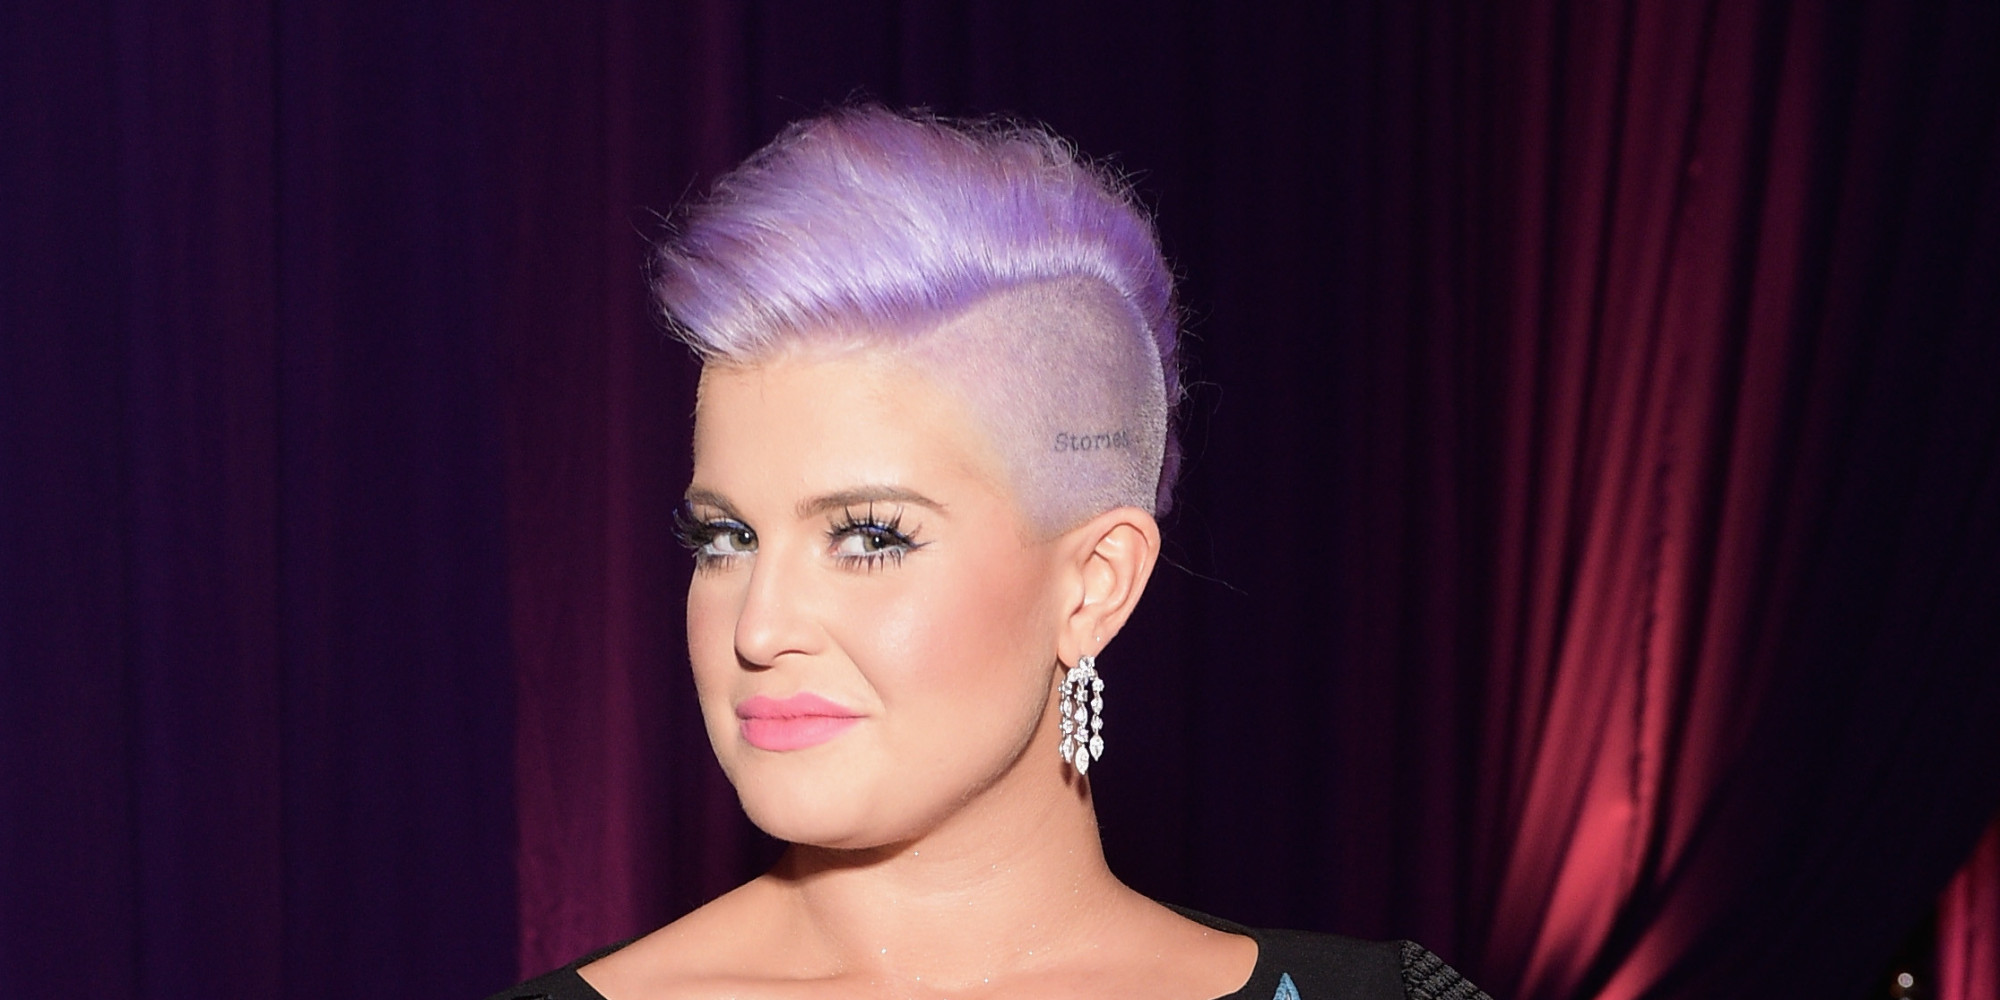 LOS ANGELES, CA - FEBRUARY 22:  Tv personality Kelly Osbourne, wearing Chopard, attends the 23rd Annual Elton John AIDS Foundation Academy Awards viewing party with Chopard on February 22, 2015 in Los Angeles, California.  (Photo by Stefanie Keenan/Getty Images for Chopard)